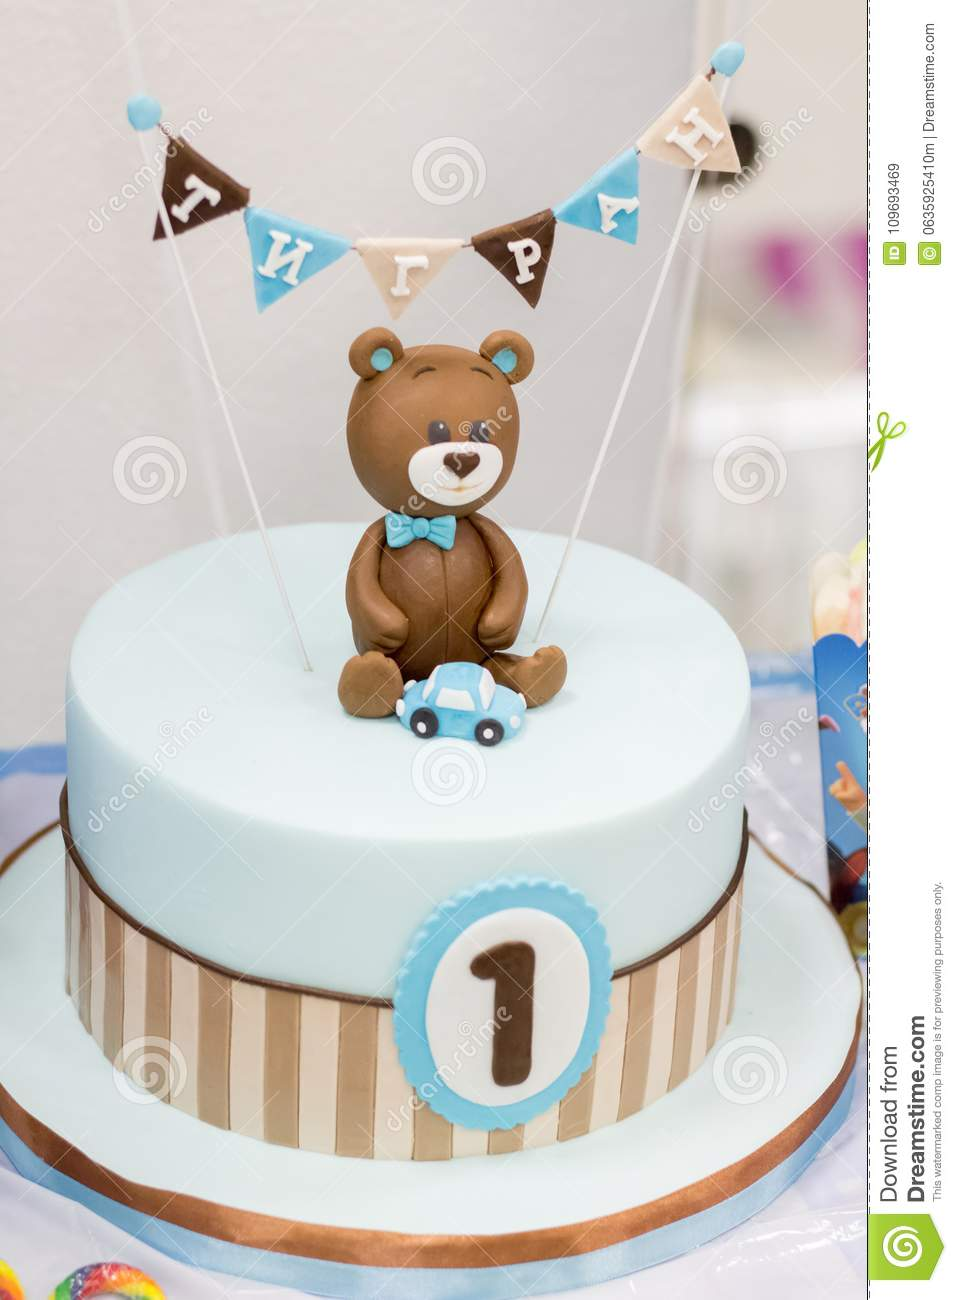 Fabulous Cake For The First Birthday Stock Image Image Of Portion T Funny Birthday Cards Online Alyptdamsfinfo